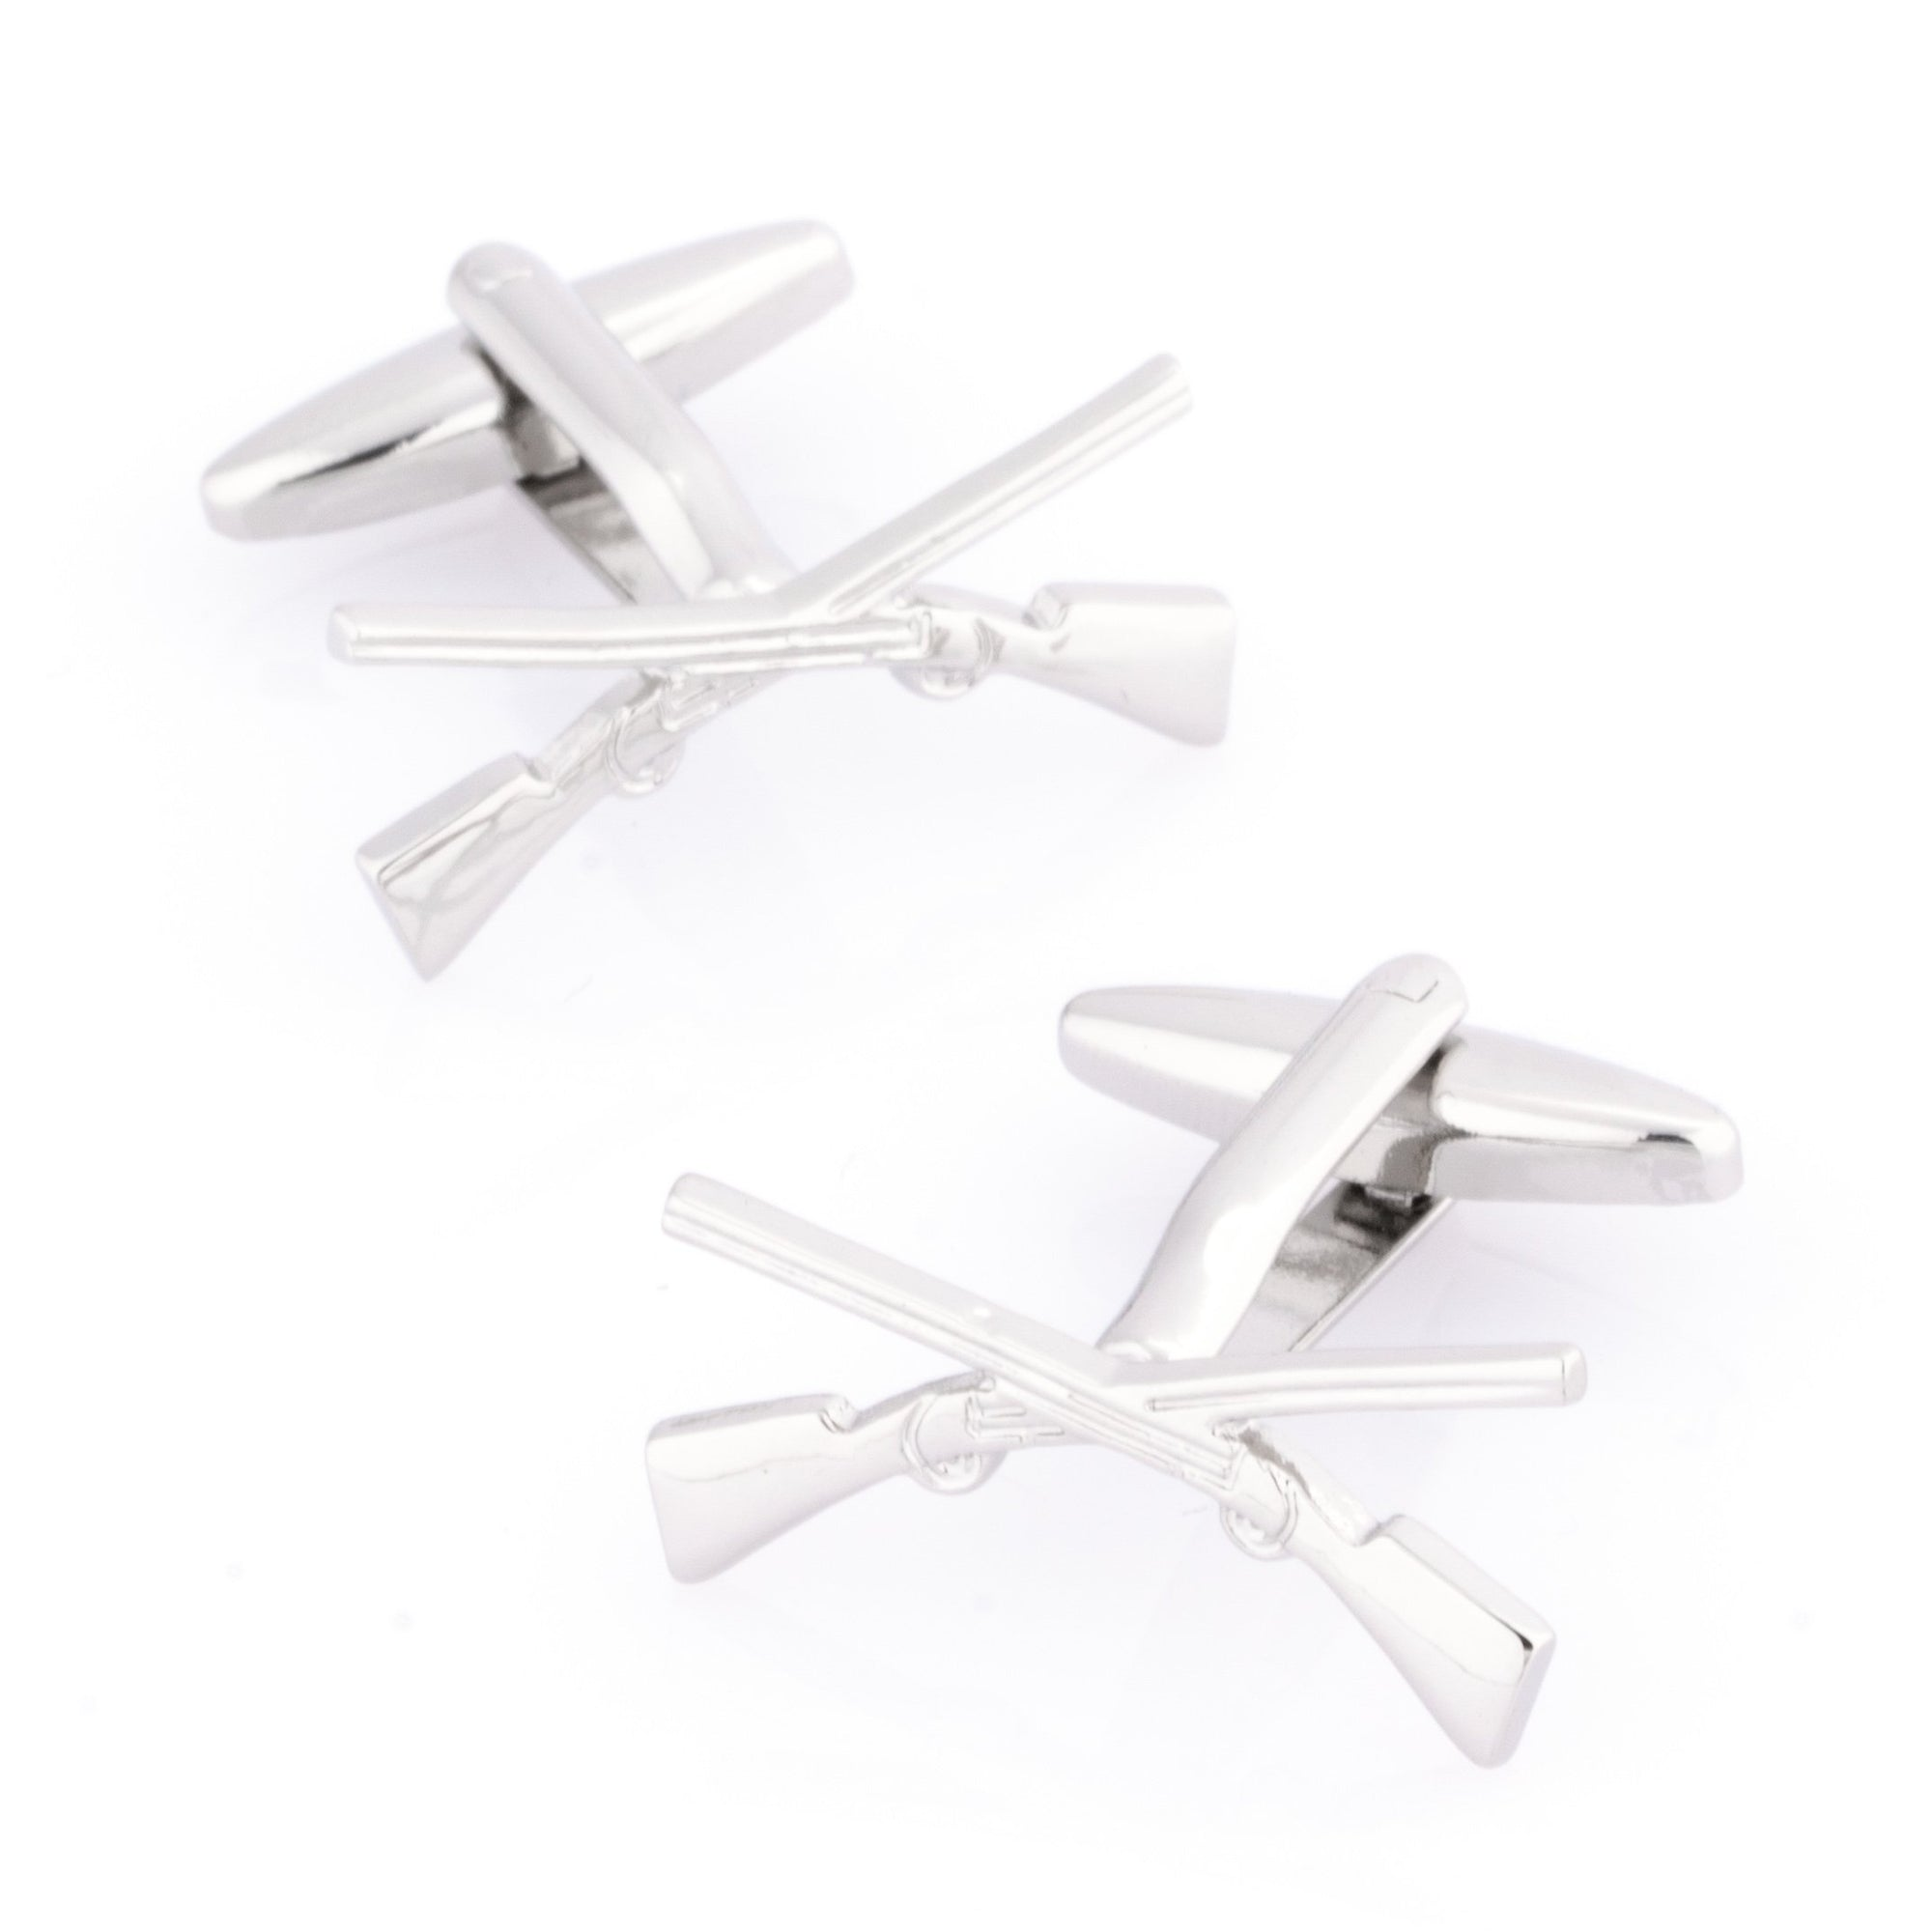 Crossed Rifle Cufflinks Novelty Cufflinks Clinks Australia Crossed Rifle Cufflinks